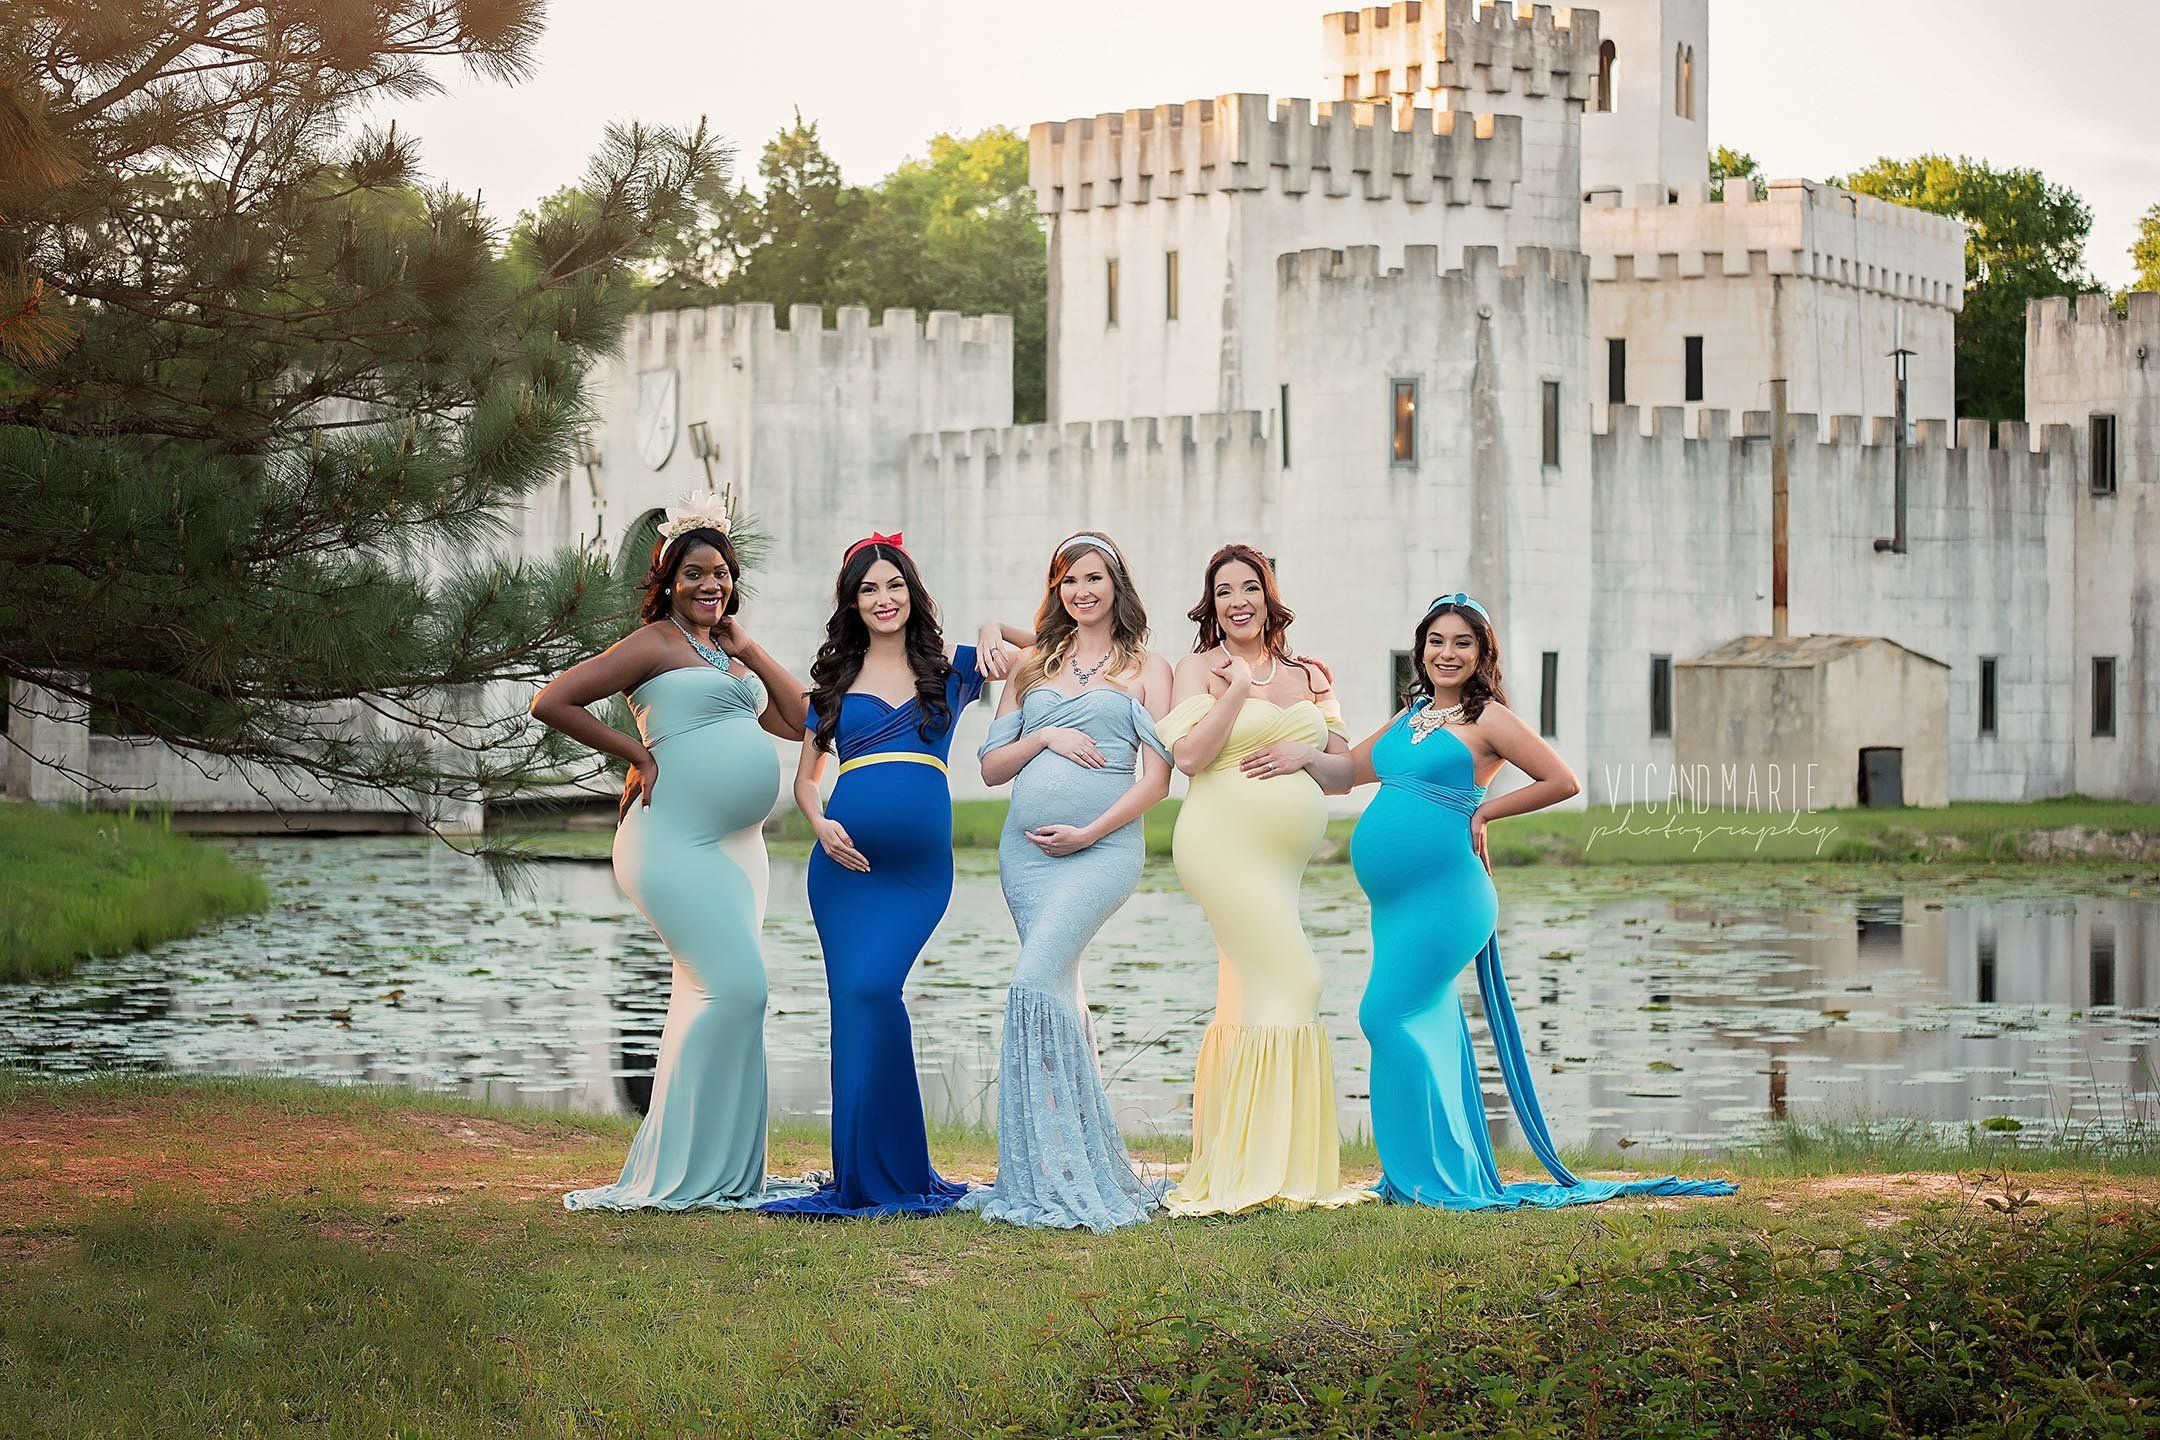 Victor and Marie Luna, a husband-wife photography team in Texas, put together a Disney princess-themed maternity shoot.